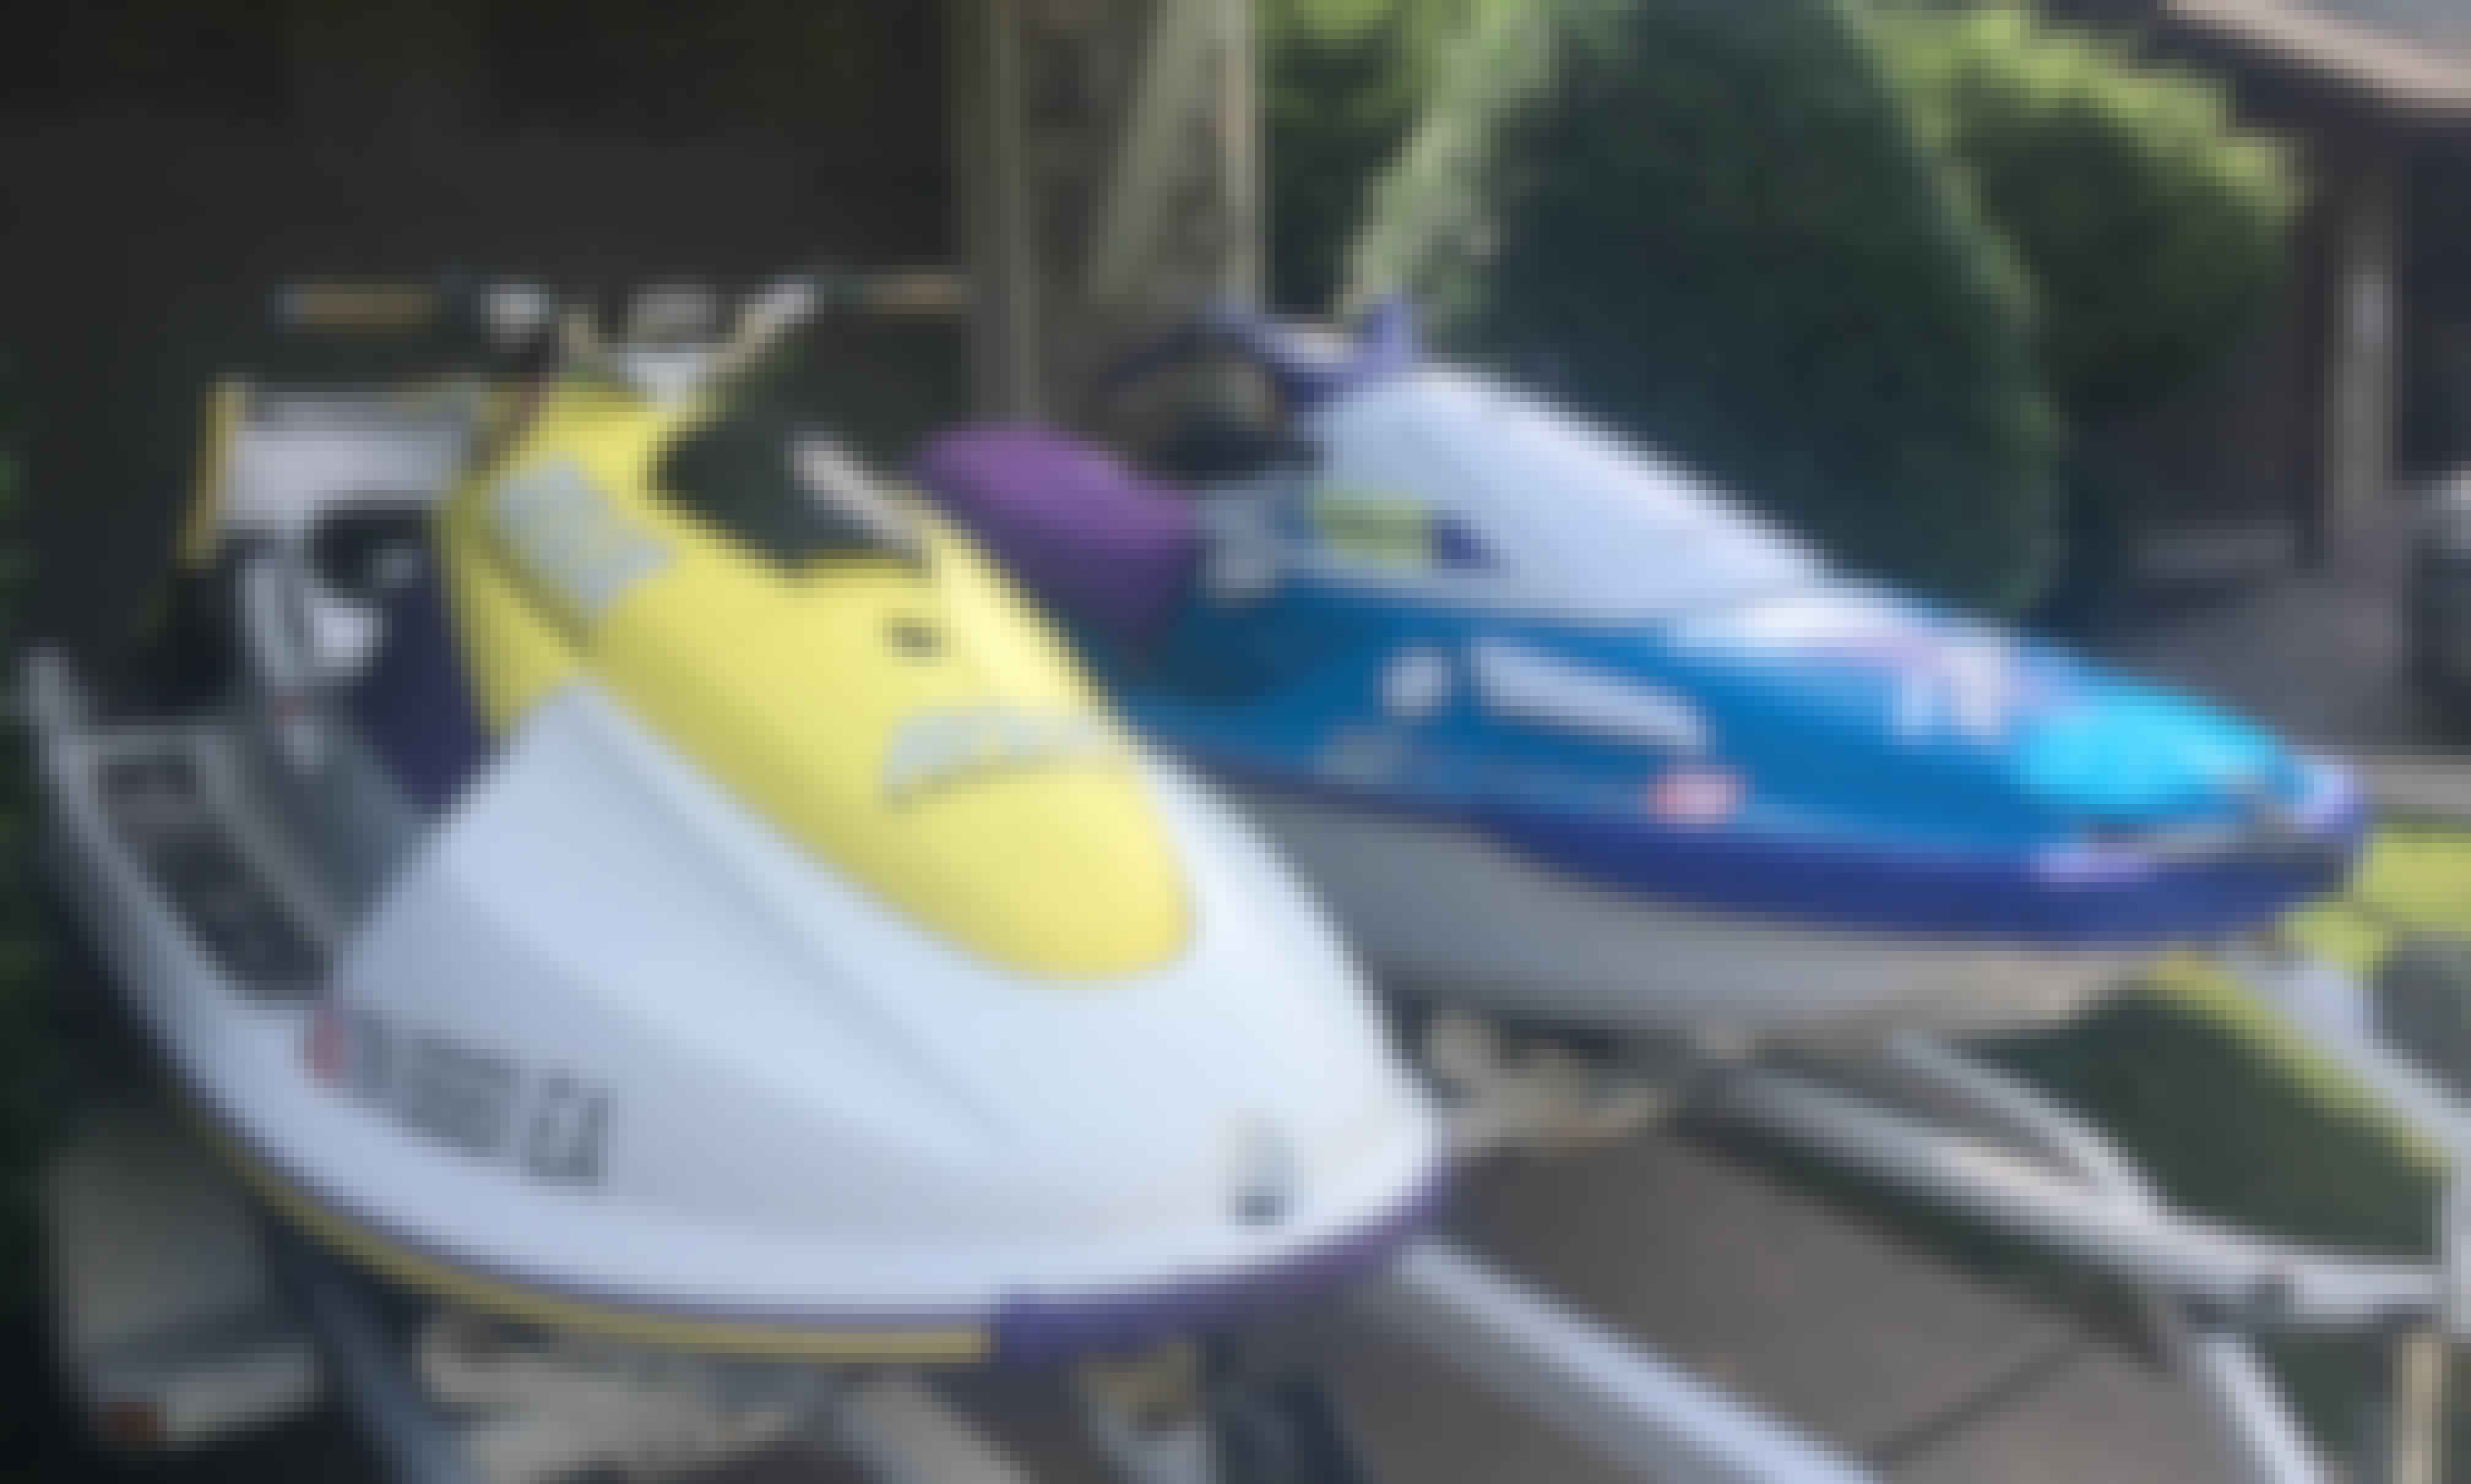 Steer Up a Yamaha Jet Ski in Nashville and have fun on the water!